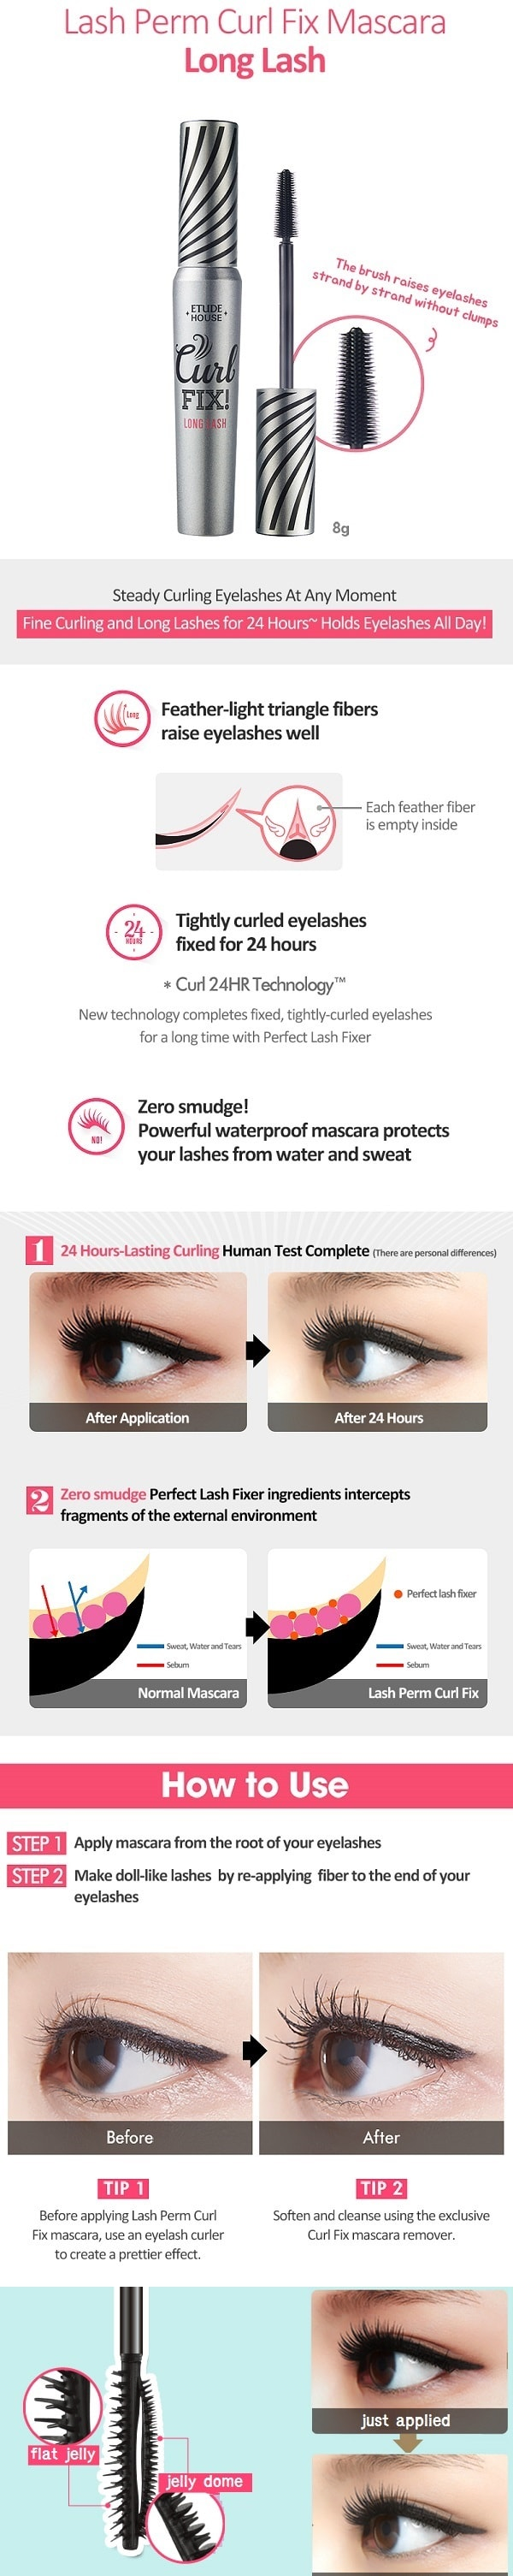 ETUDE HOUSE Lash Perm Curl Fix Mascara - Long Lash